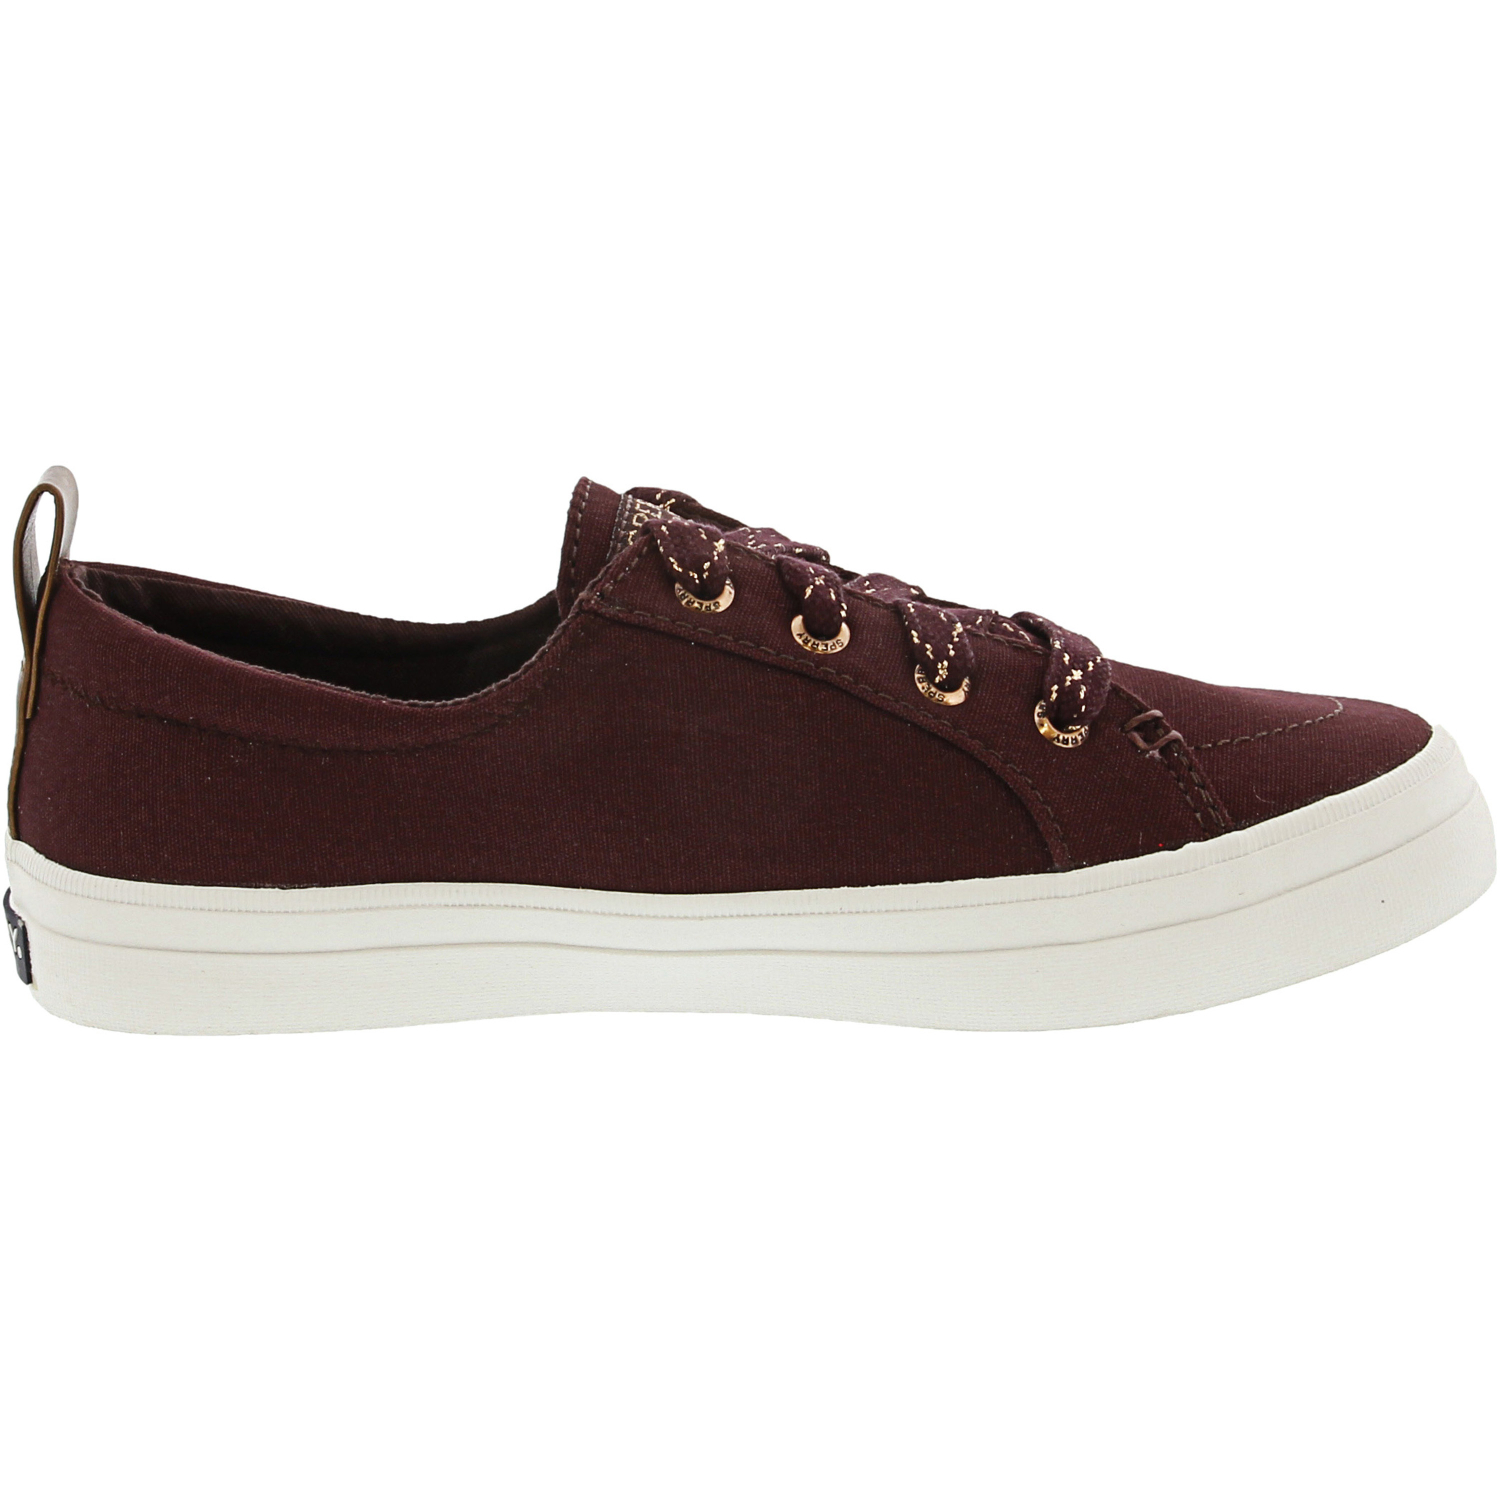 Sperry-Women-039-s-Crest-Vibe-Canvas-Ankle-High-Sneaker thumbnail 7